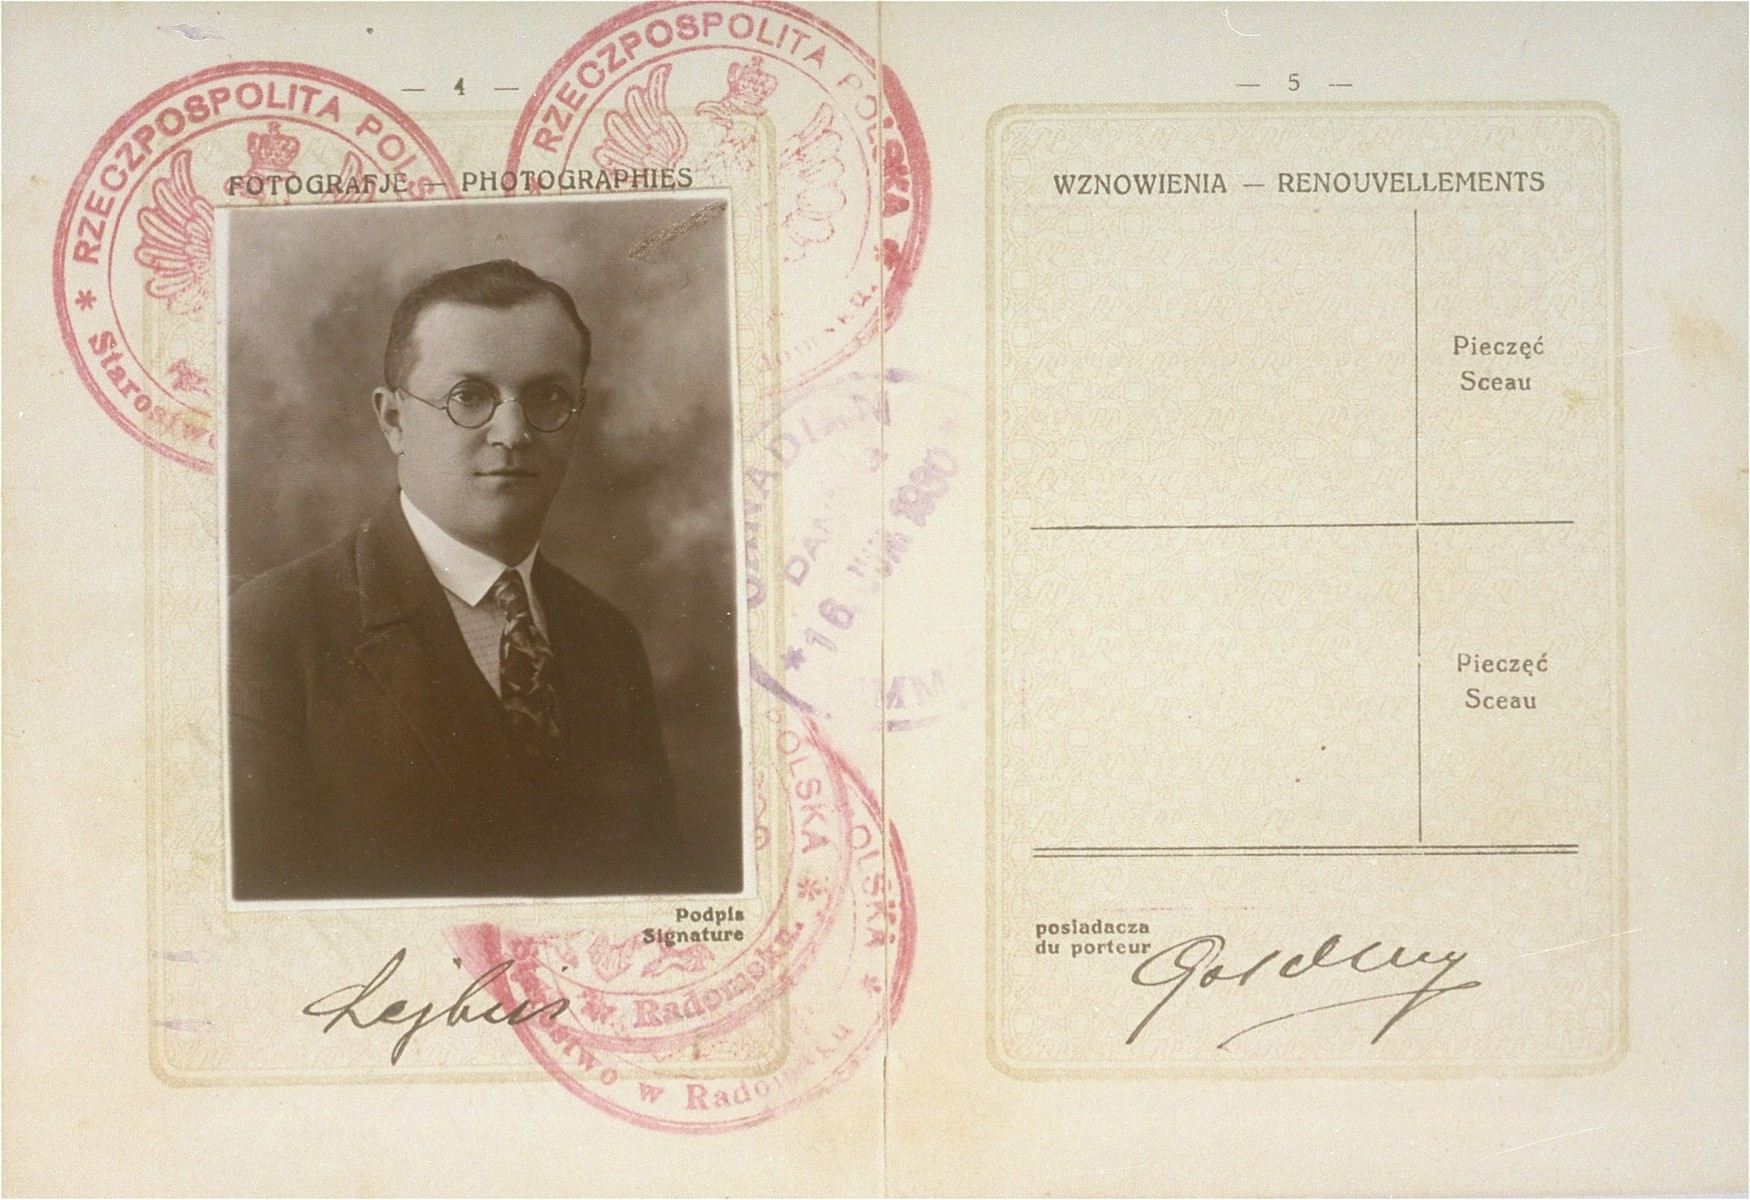 Passport of Lejbus Goldberg.